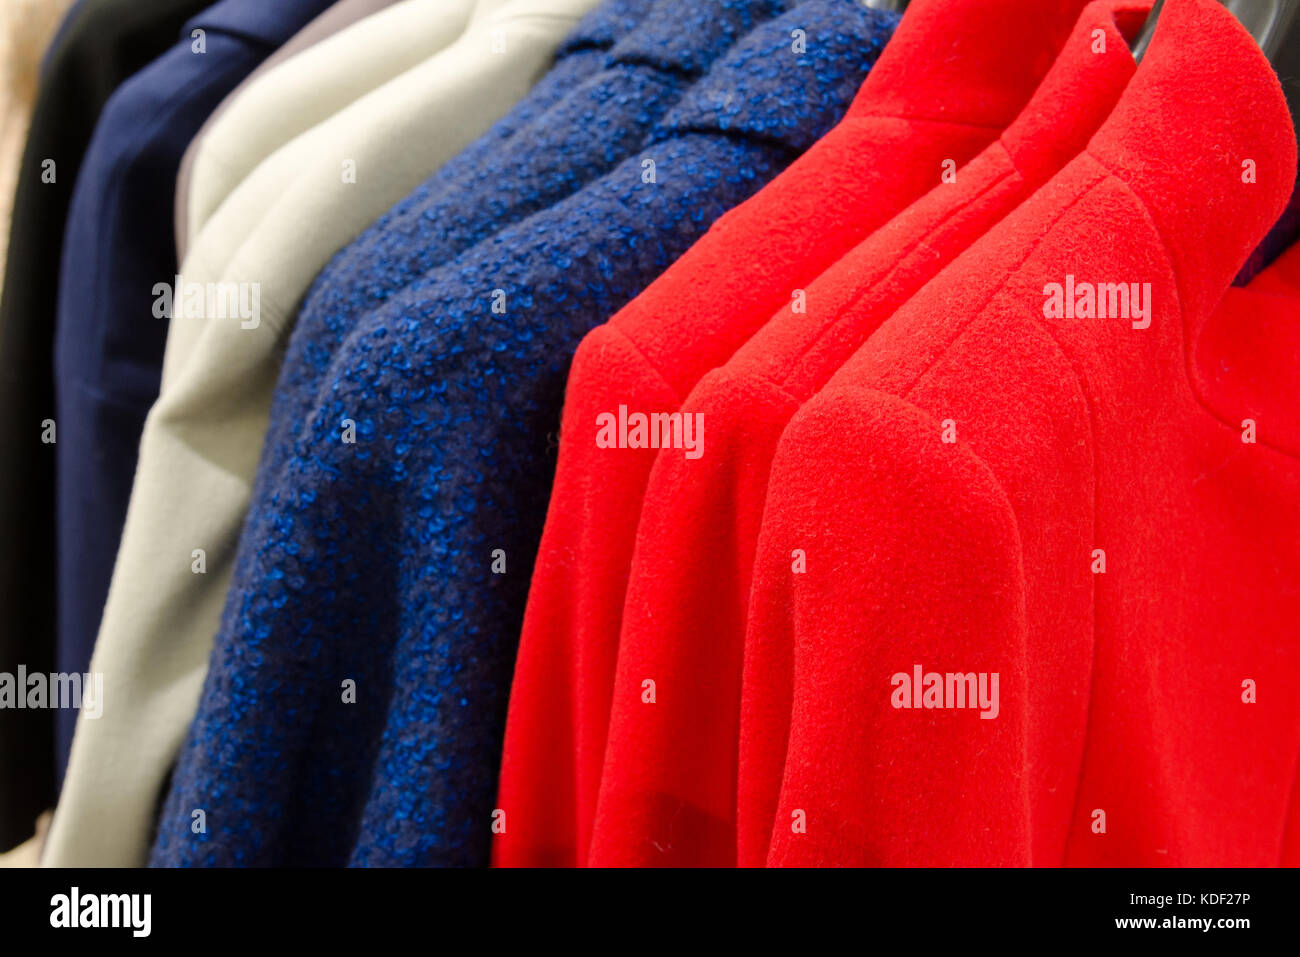 womens cashmere coats of different colors in the store - Stock Image